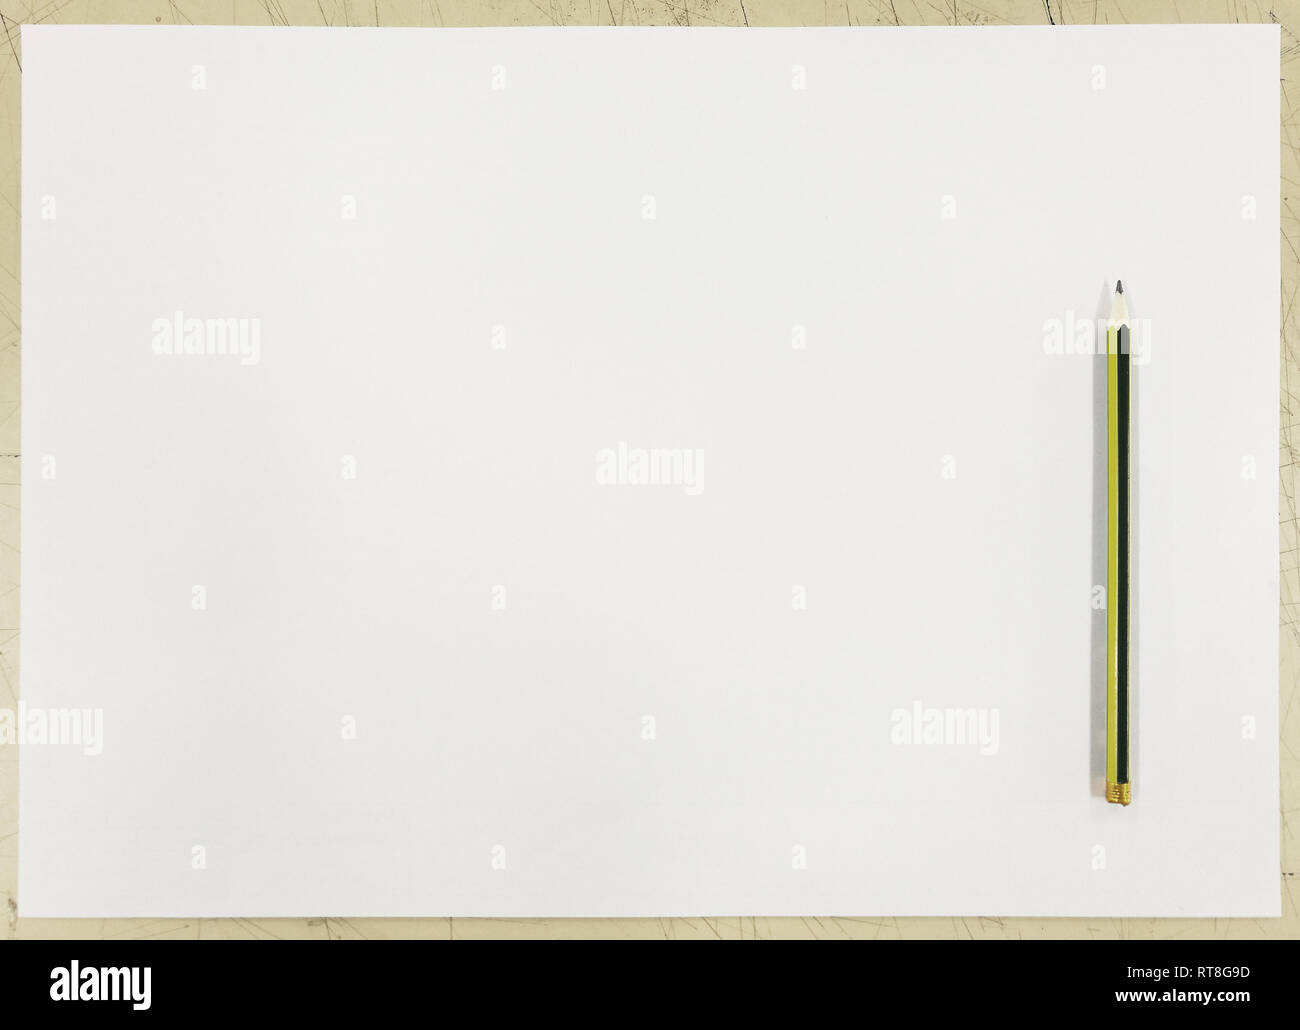 white paper on table and a single pencil on top. Top view background for idea formulation and writing concepts. - Stock Image